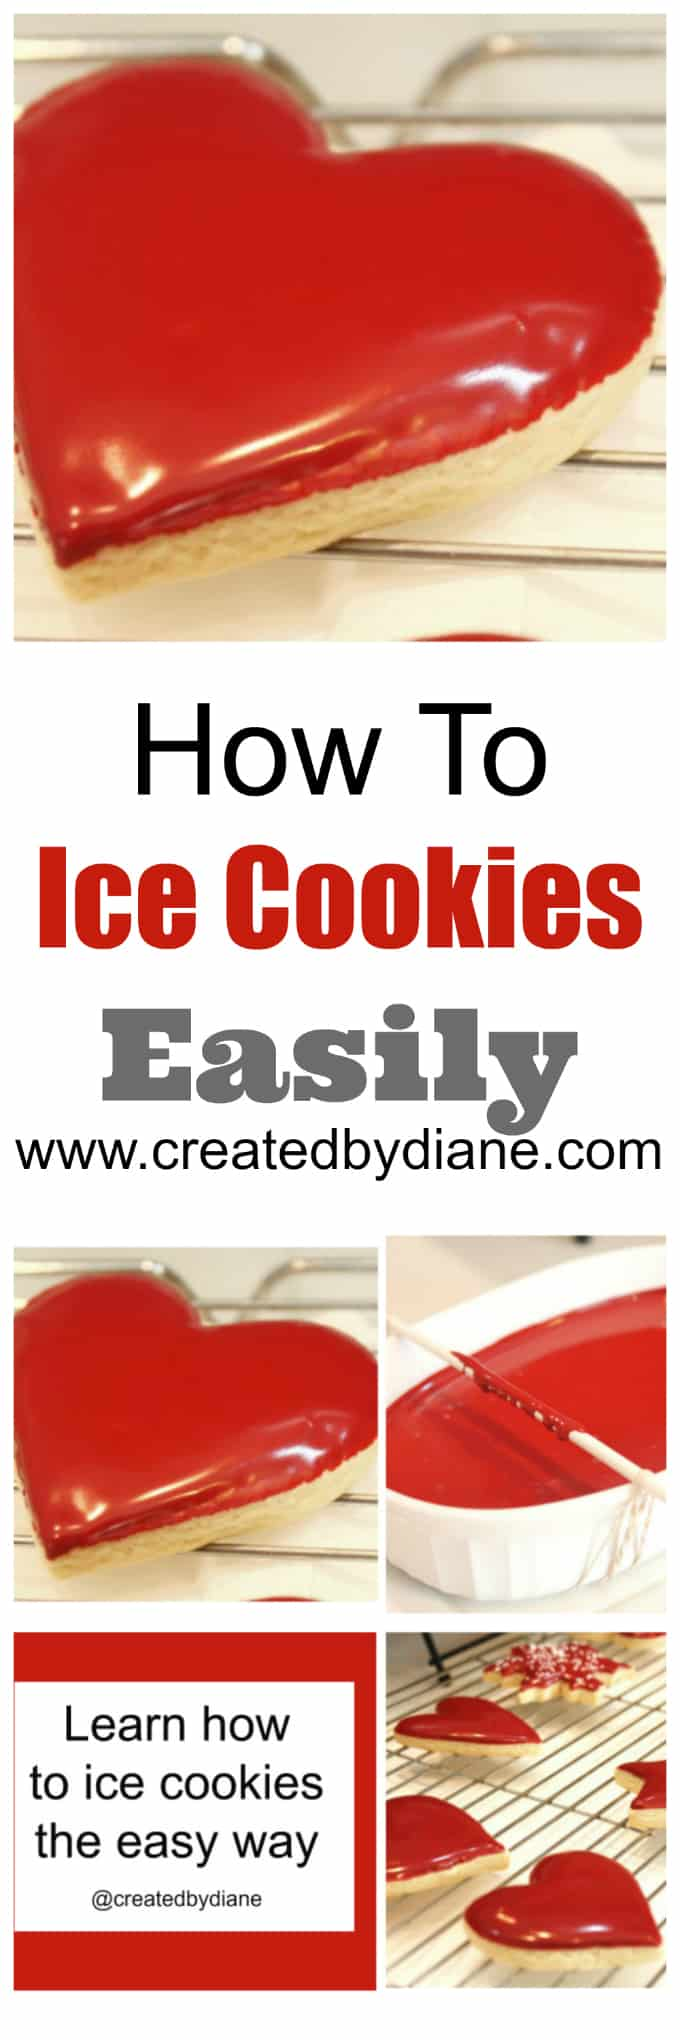 How To Ice Cookies No Piping Bag Video